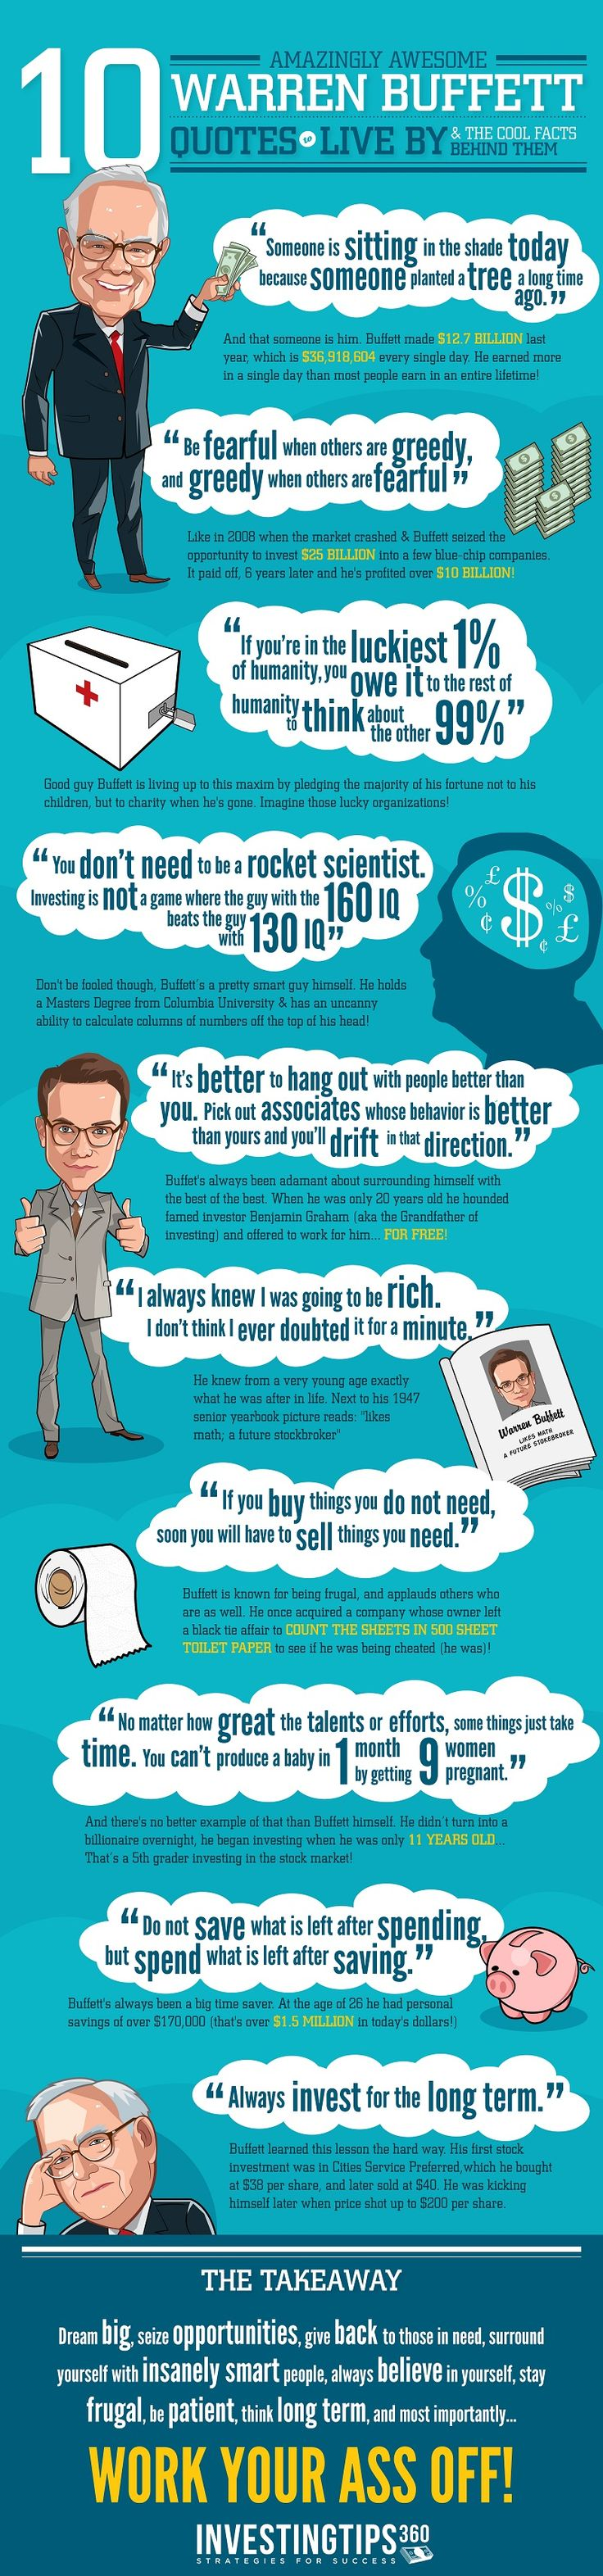 10 Amazingly Awesome Warren Buffett Quotes to Live By   #infographic #Quotes #trading Found @stigghhh26  http://www.tradingprofits4u.com/